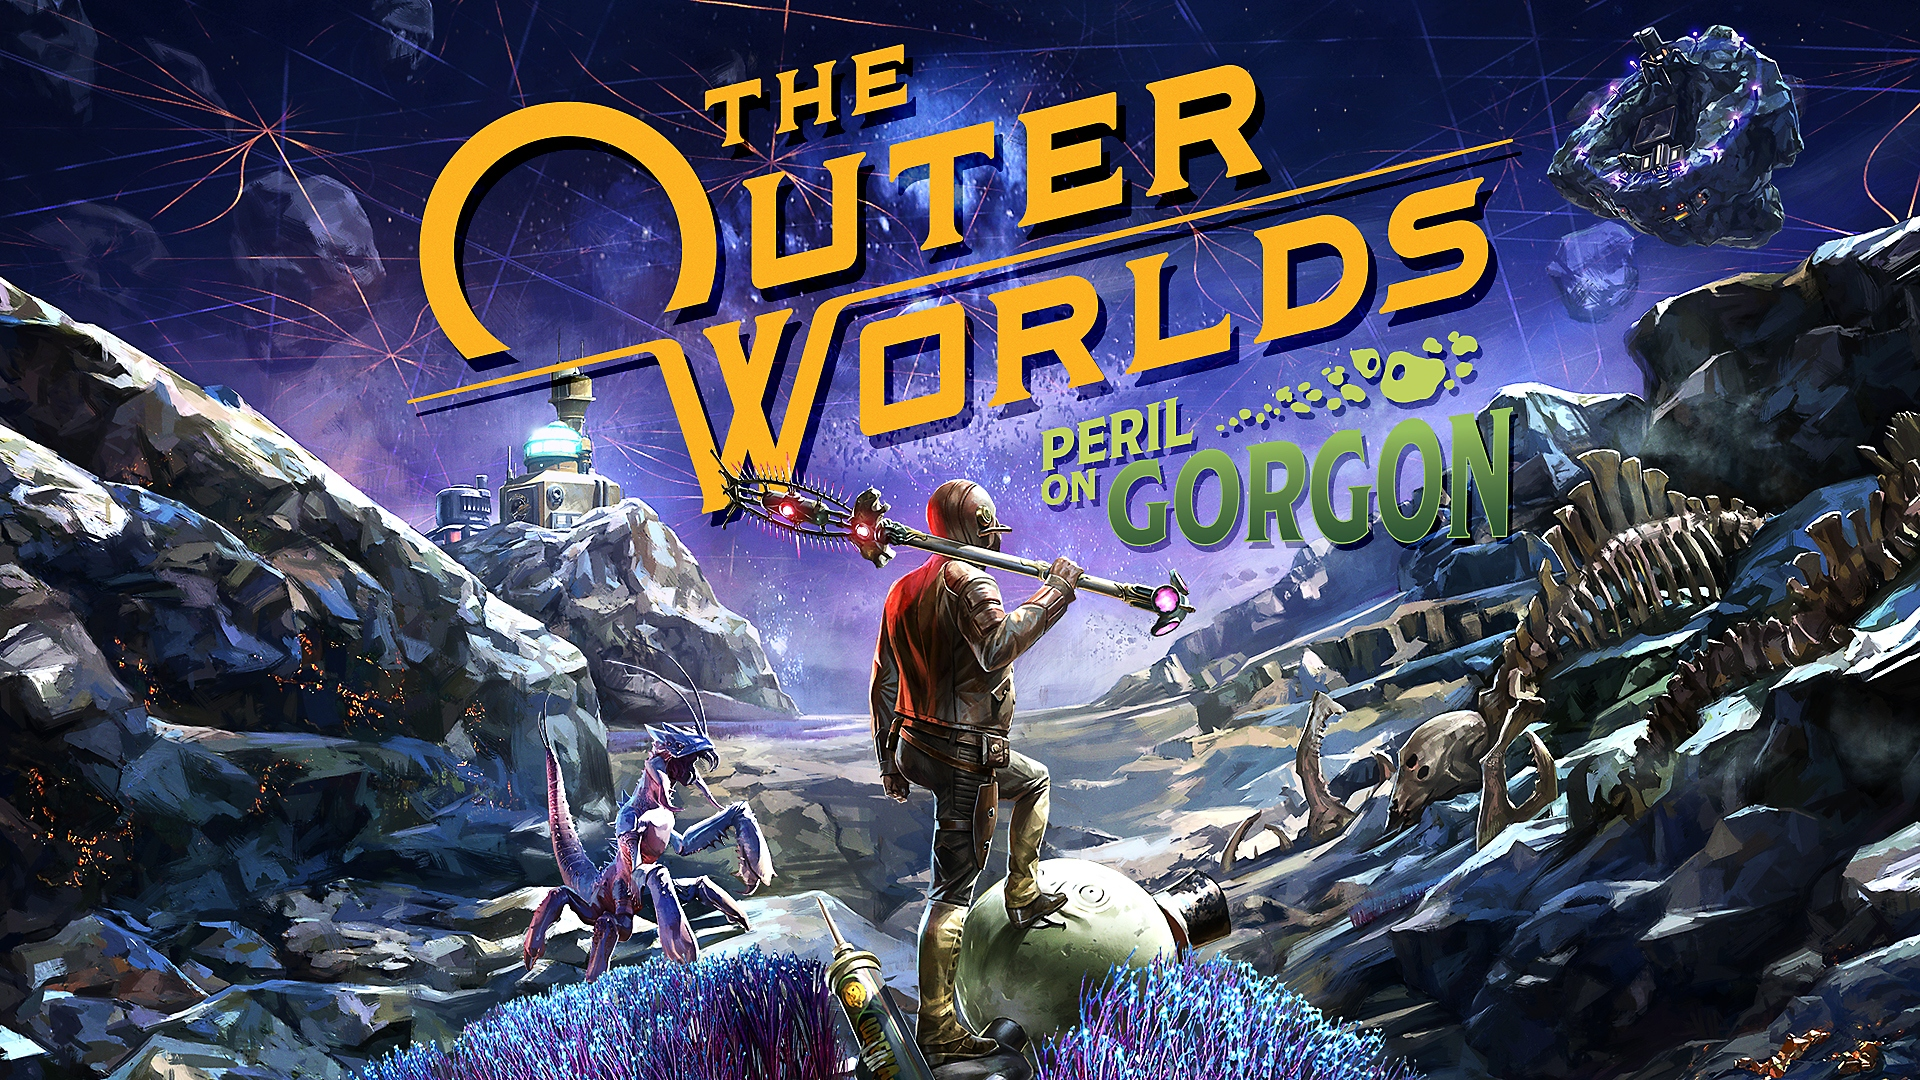 The Outer Worlds: Peril on Gorgon - Key Art